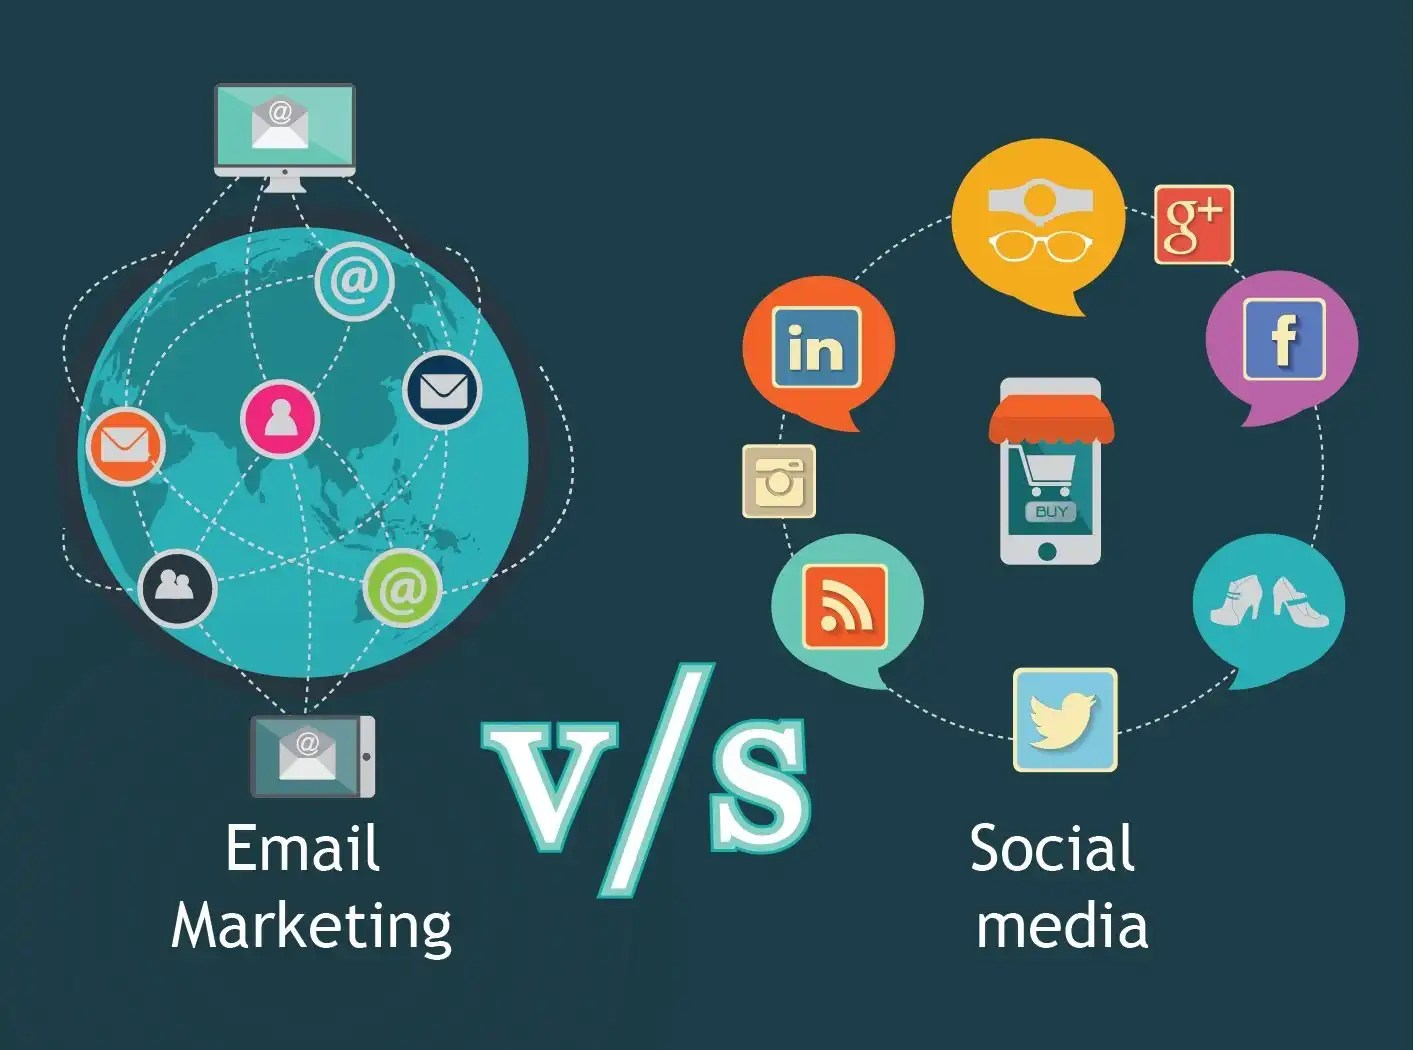 From dawn until dusk, many of us sneak moments here and there checking our socials. Email Marketing VS Social Media Marketing | Sales-Push.com